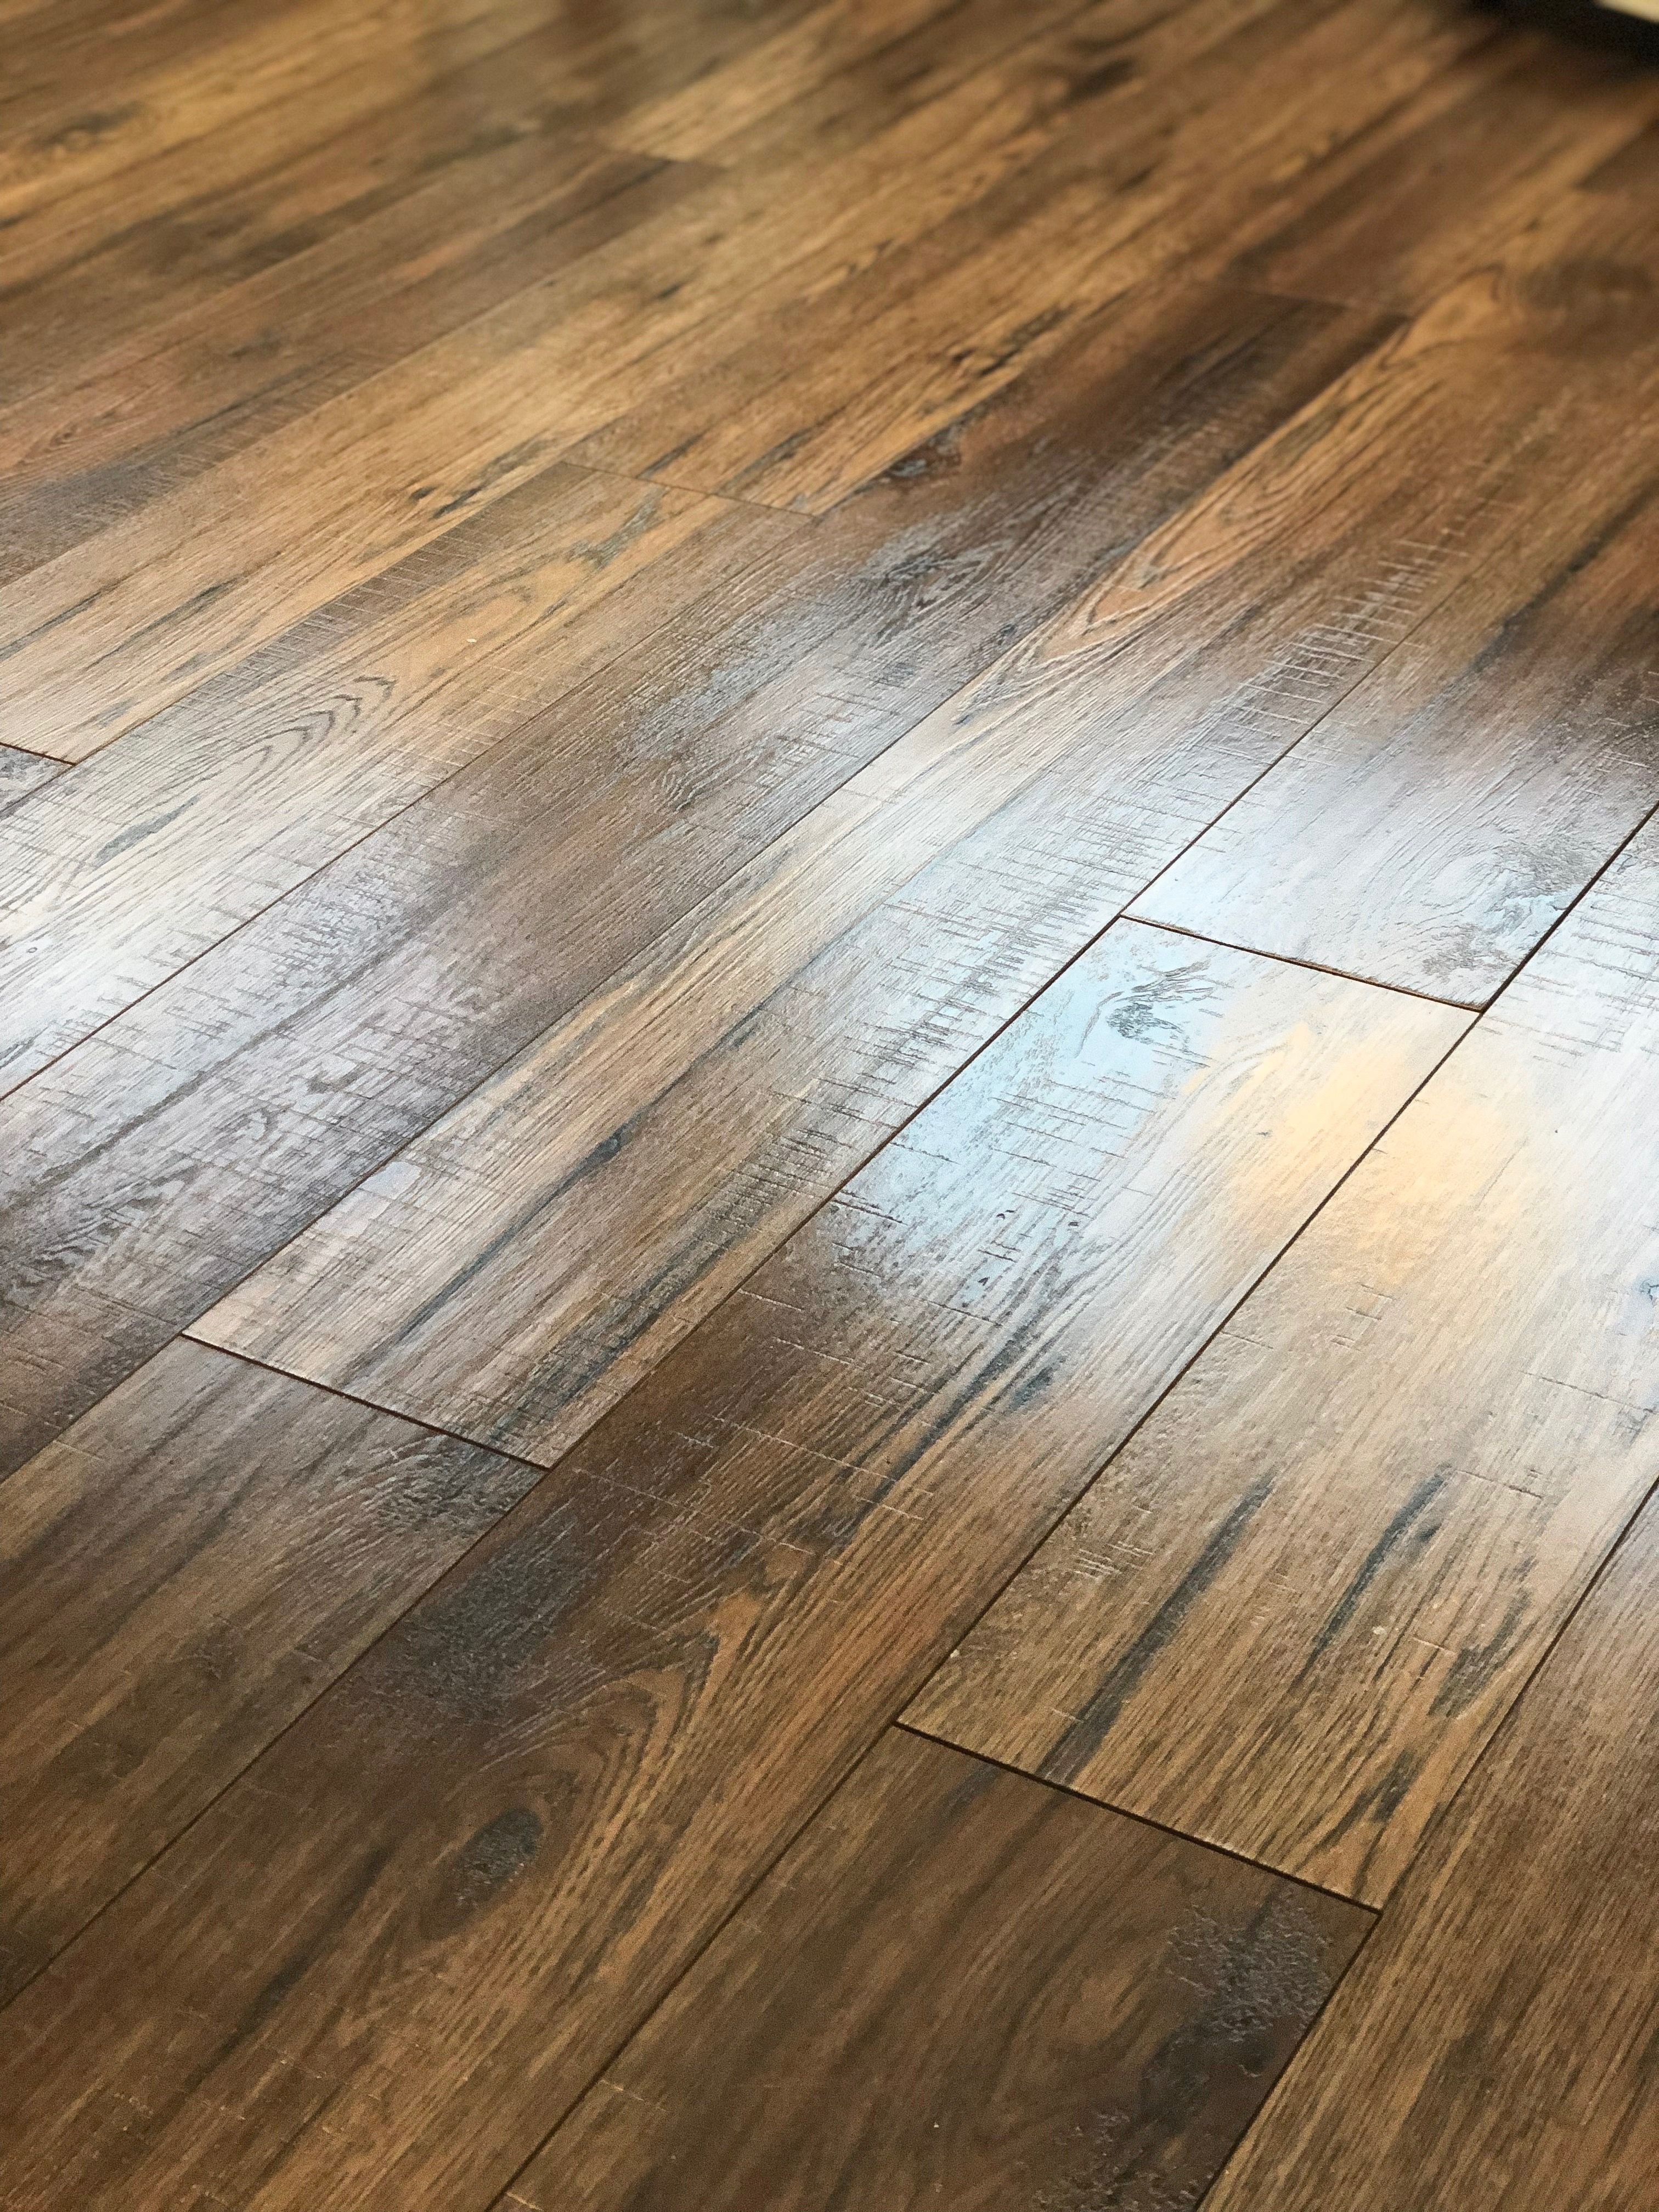 How To Add Shine To Wood Laminate Flooring Shine Laminate Floors Wood Laminate Flooring Wood Laminate